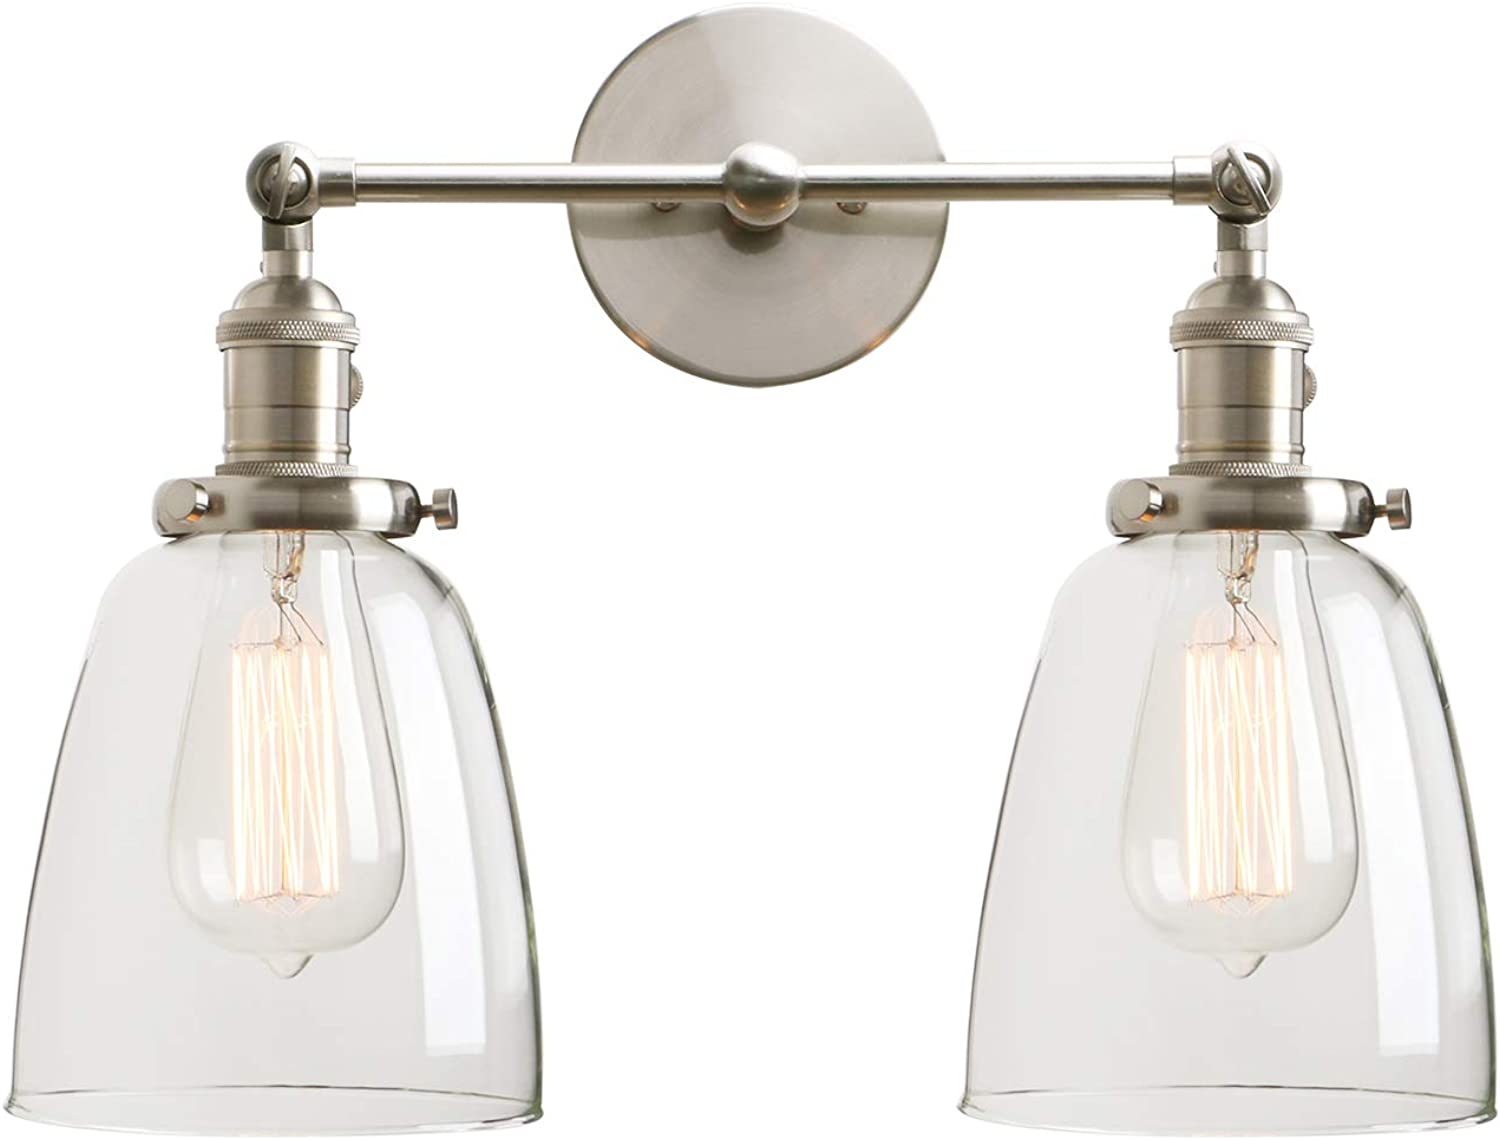 Permo Double Sconce Vintage Industrial Antique 2-Lights Wall Sconces with Oval Cone Clear Glass Shade (Brushed)